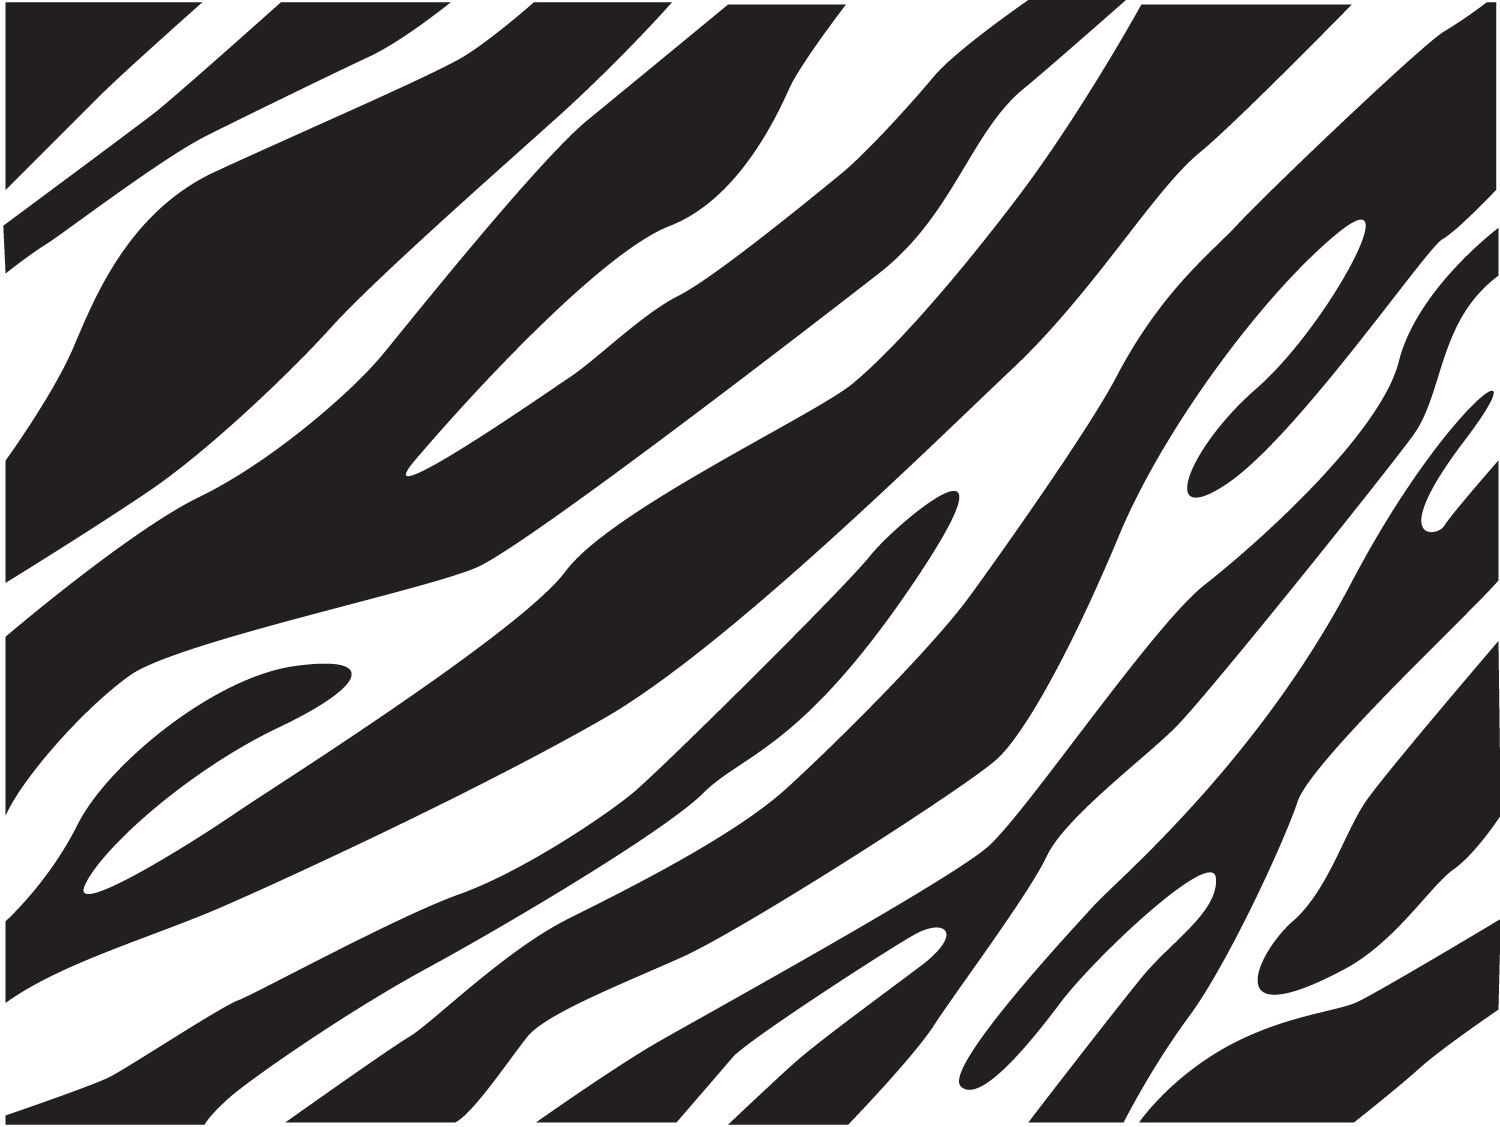 Zebra Patterned Wallpaper - Zebra print wallpaper for walls